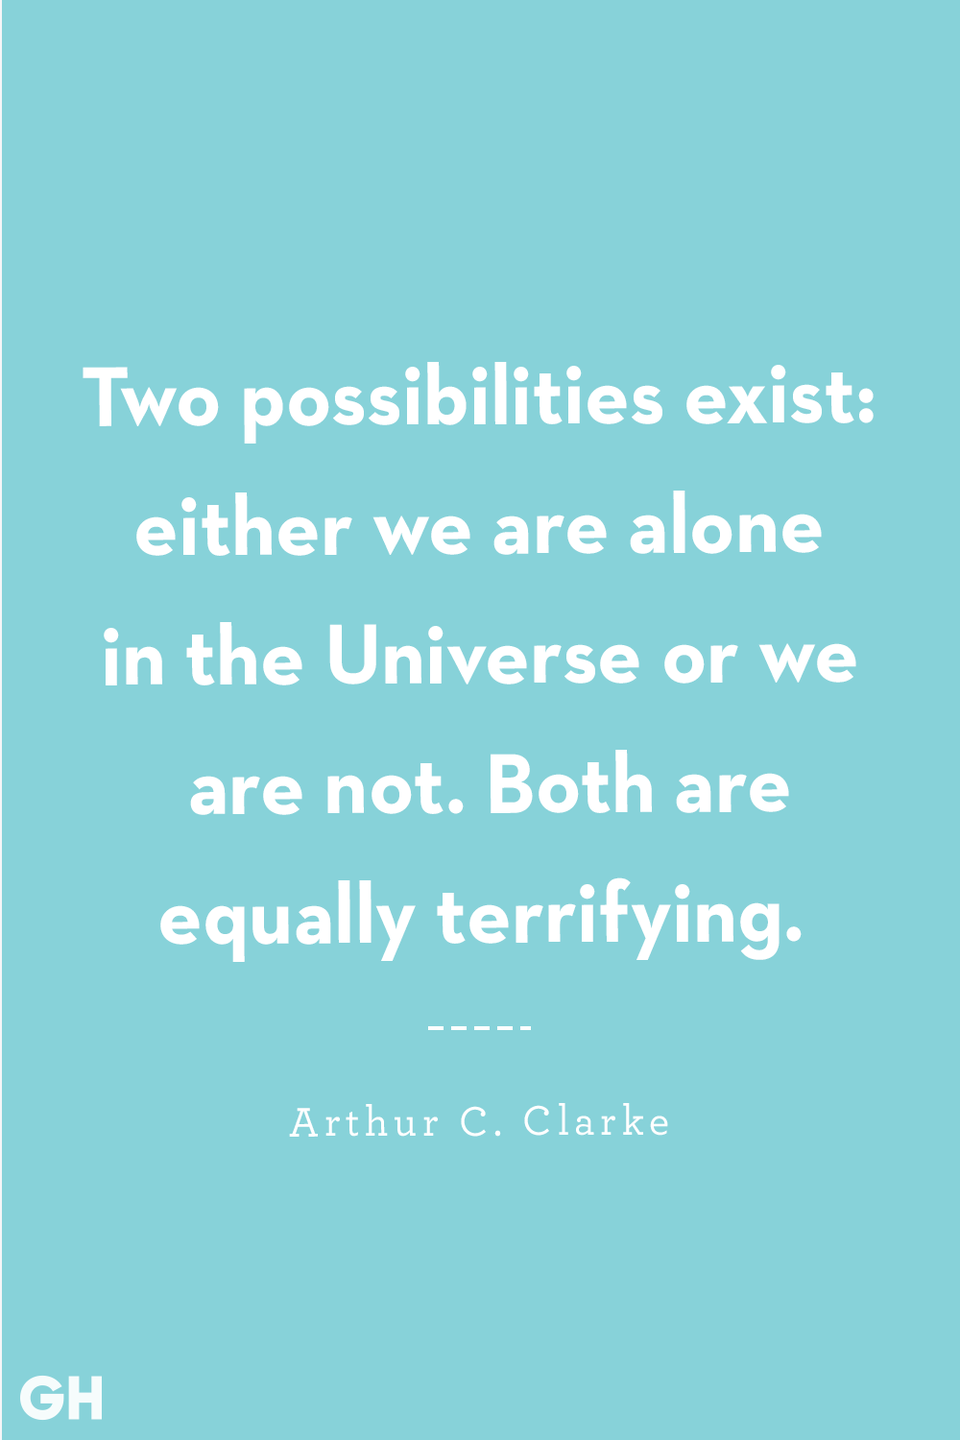 <p>Two possibilities exist: either we are alone in the Universe or we are not. Both are equally terrifying.</p>